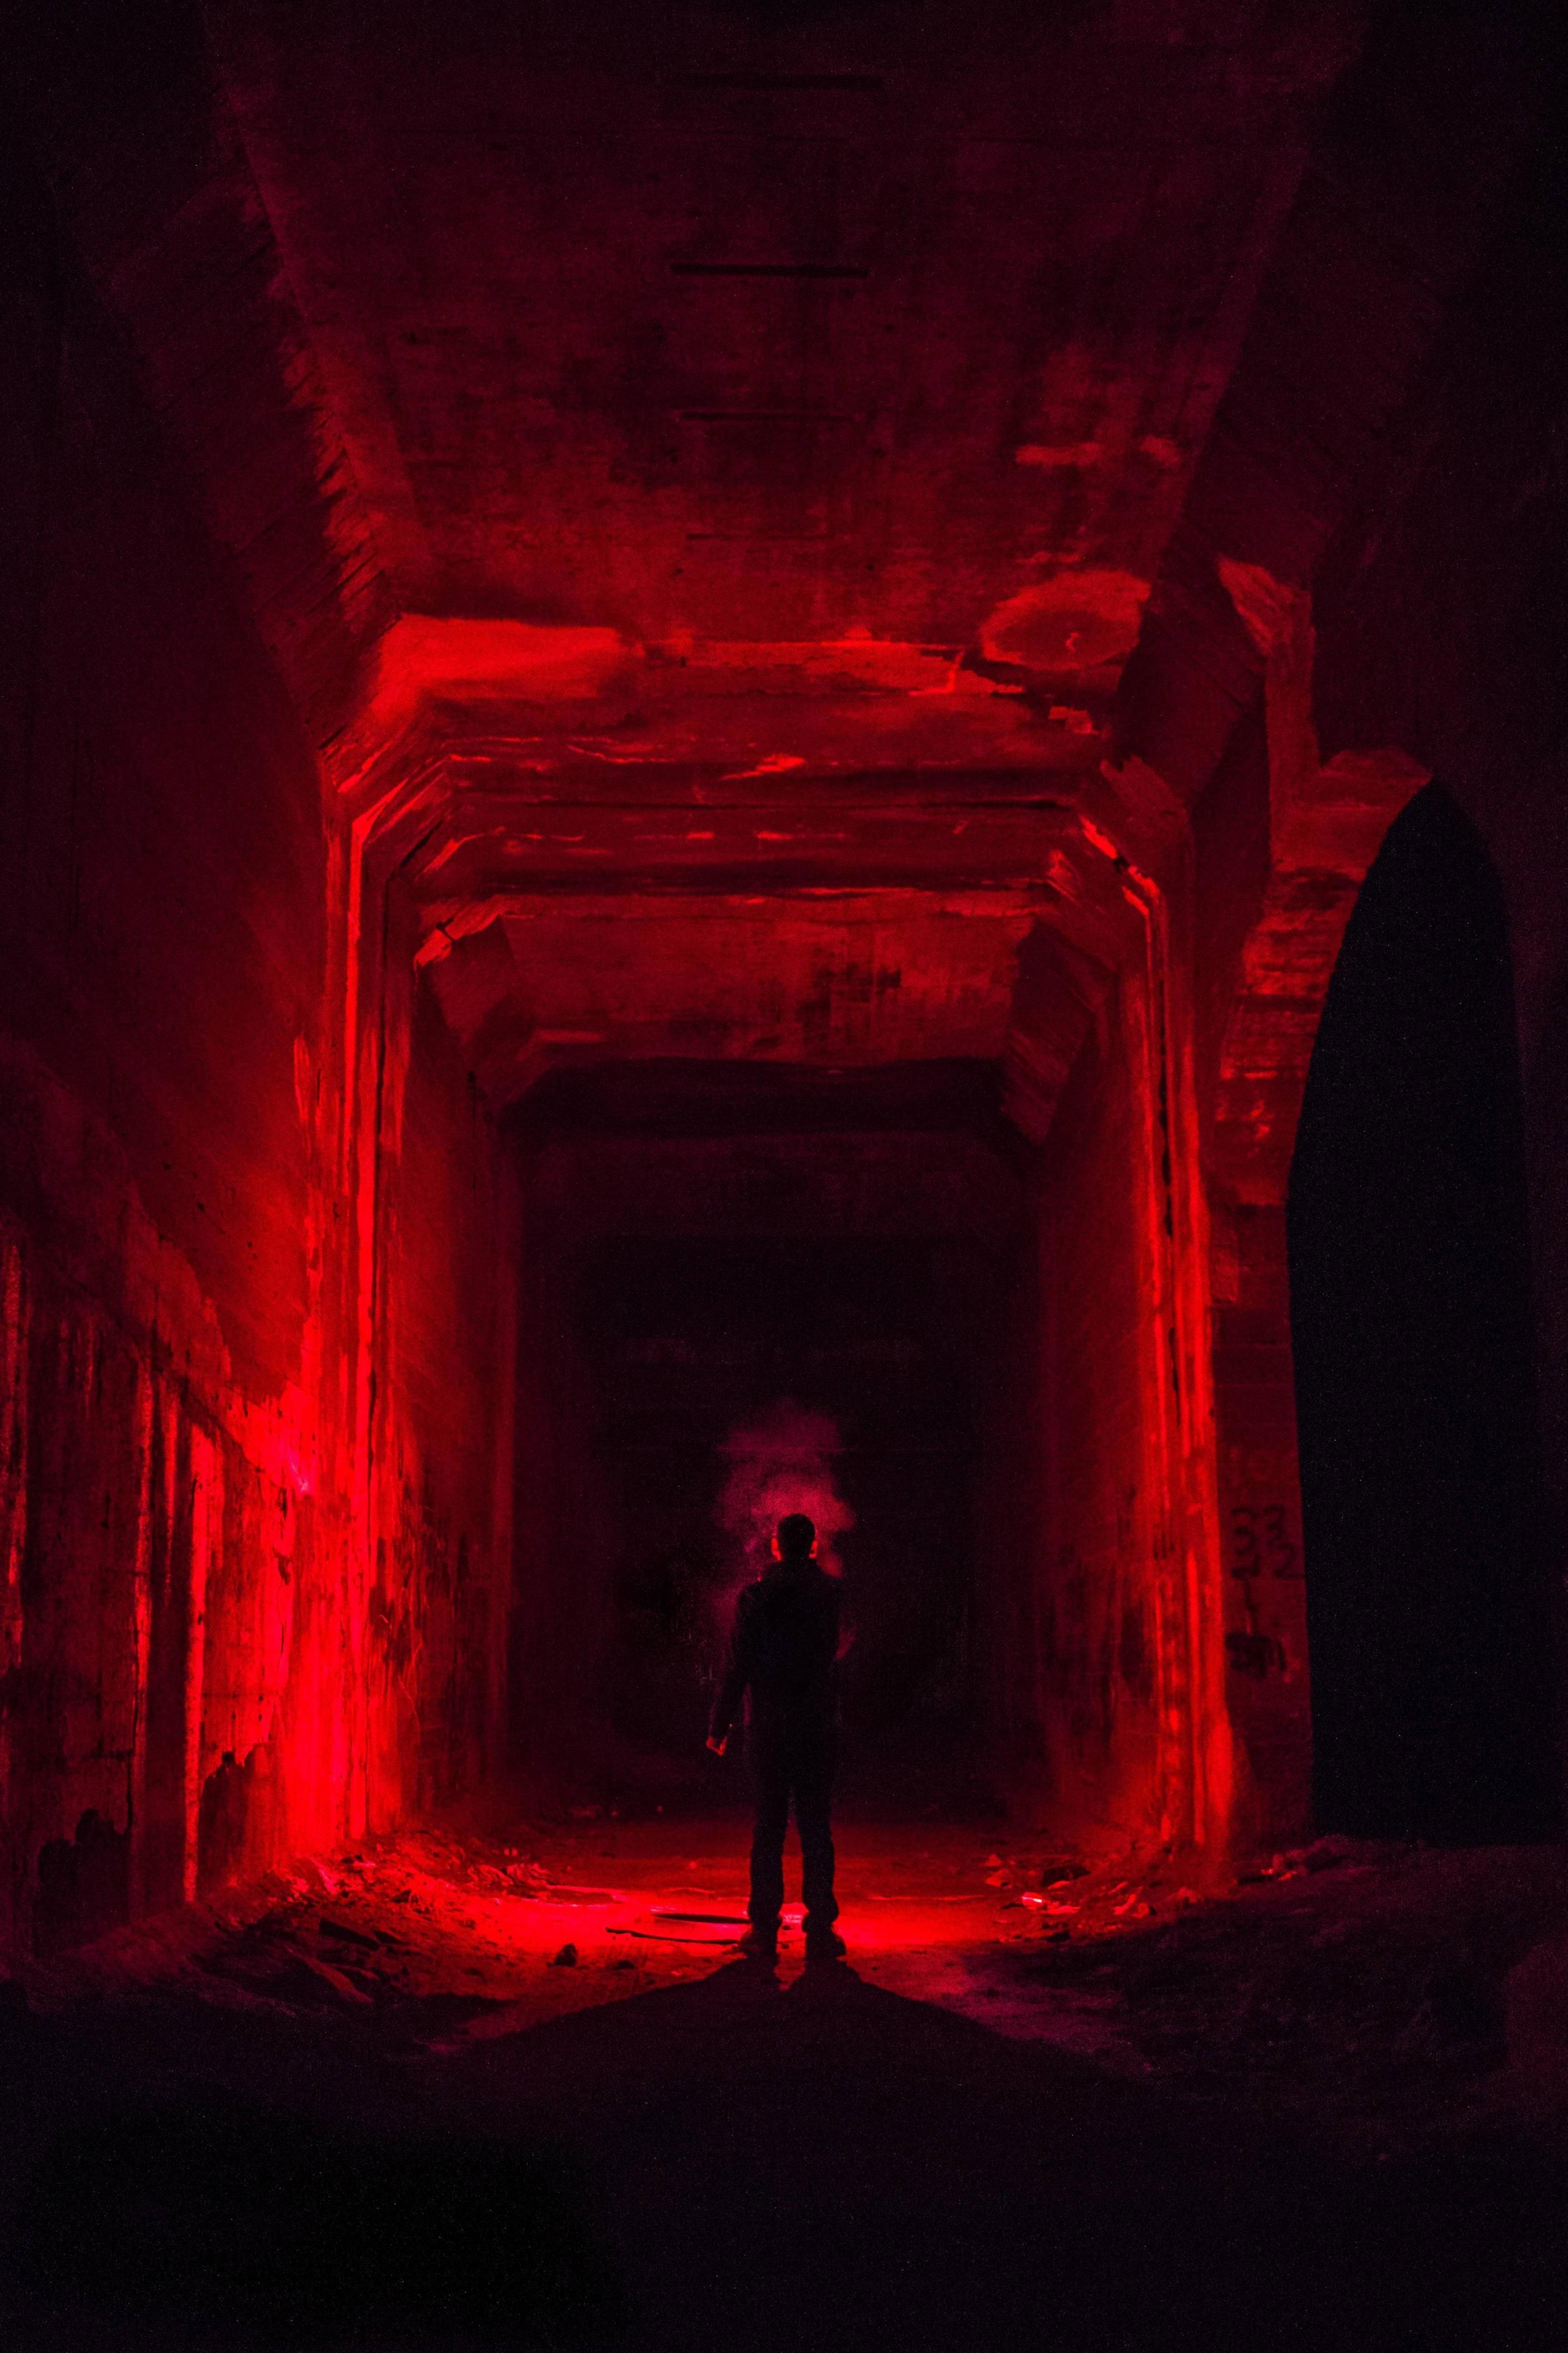 Red Neon Aesthetic Pictures